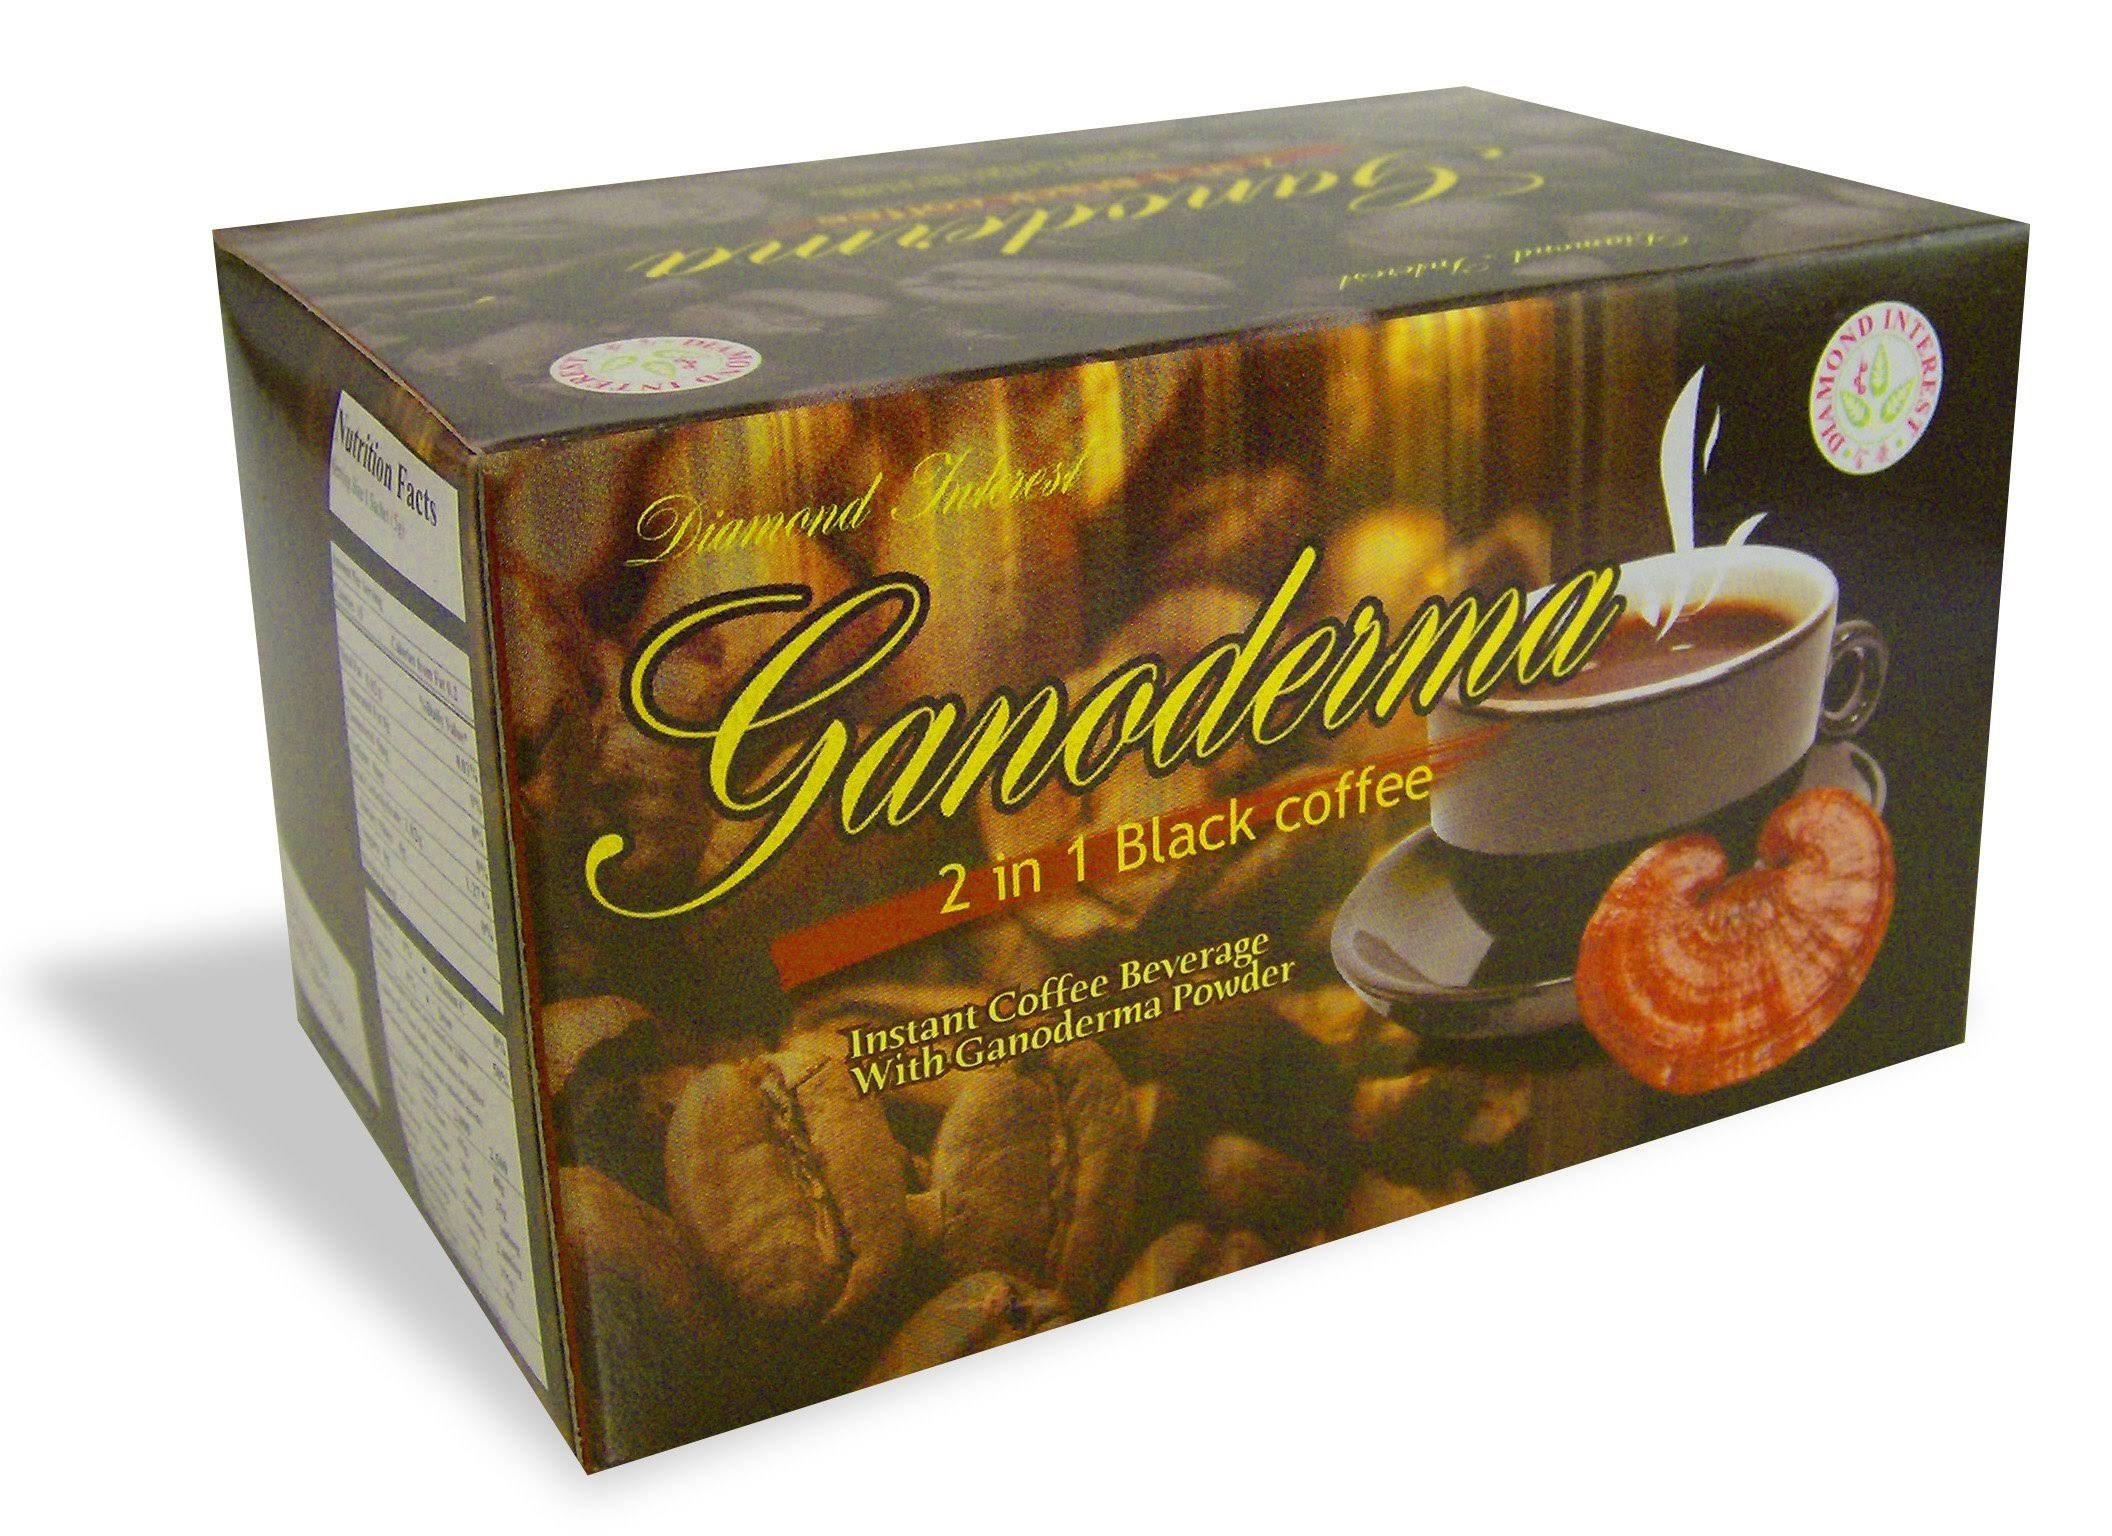 Dynalab Ganoderma 2 in 1 Black Coffee - 1550